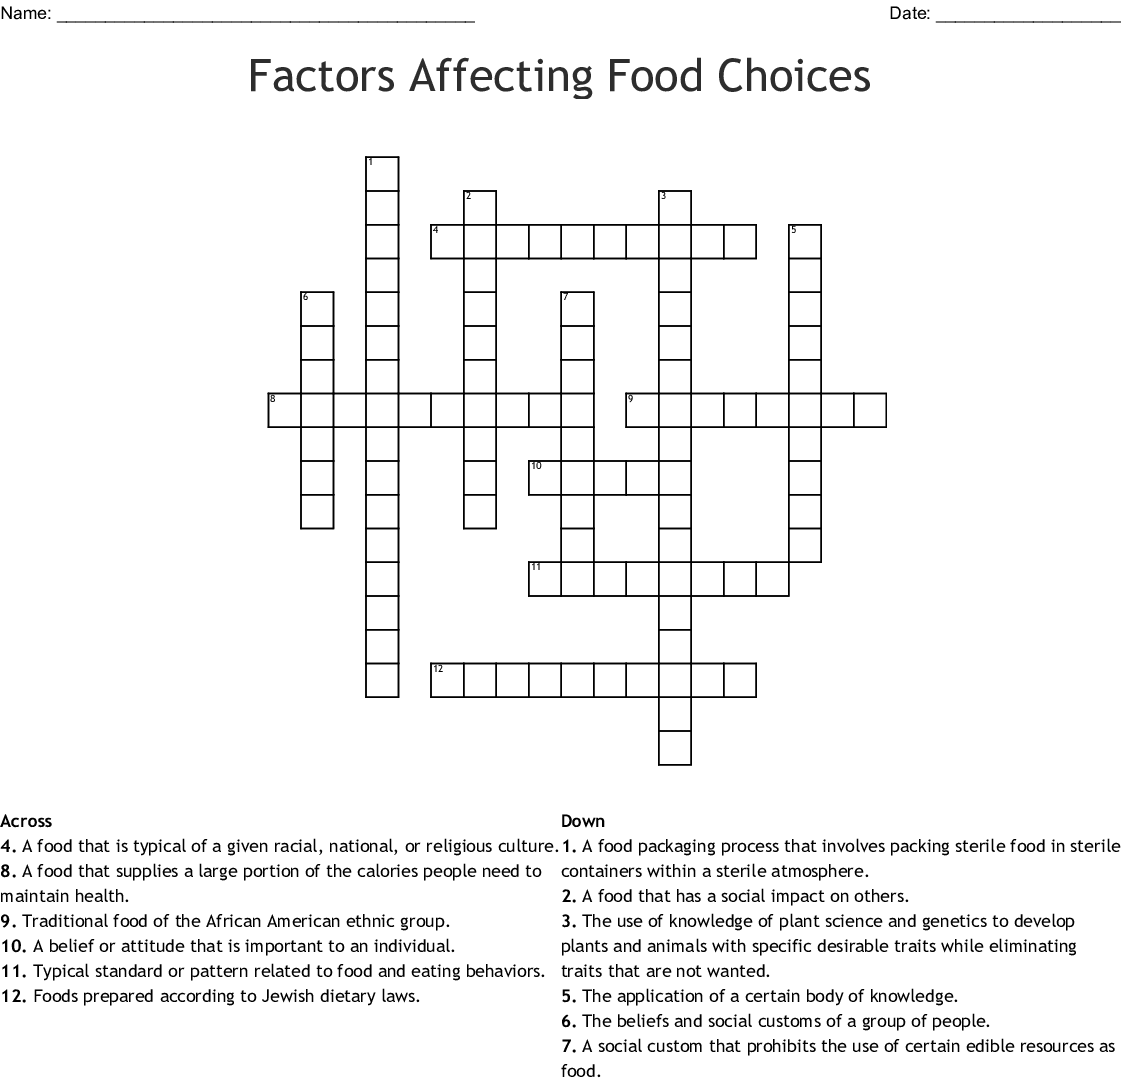 Factors Affecting Food Choices Crossword